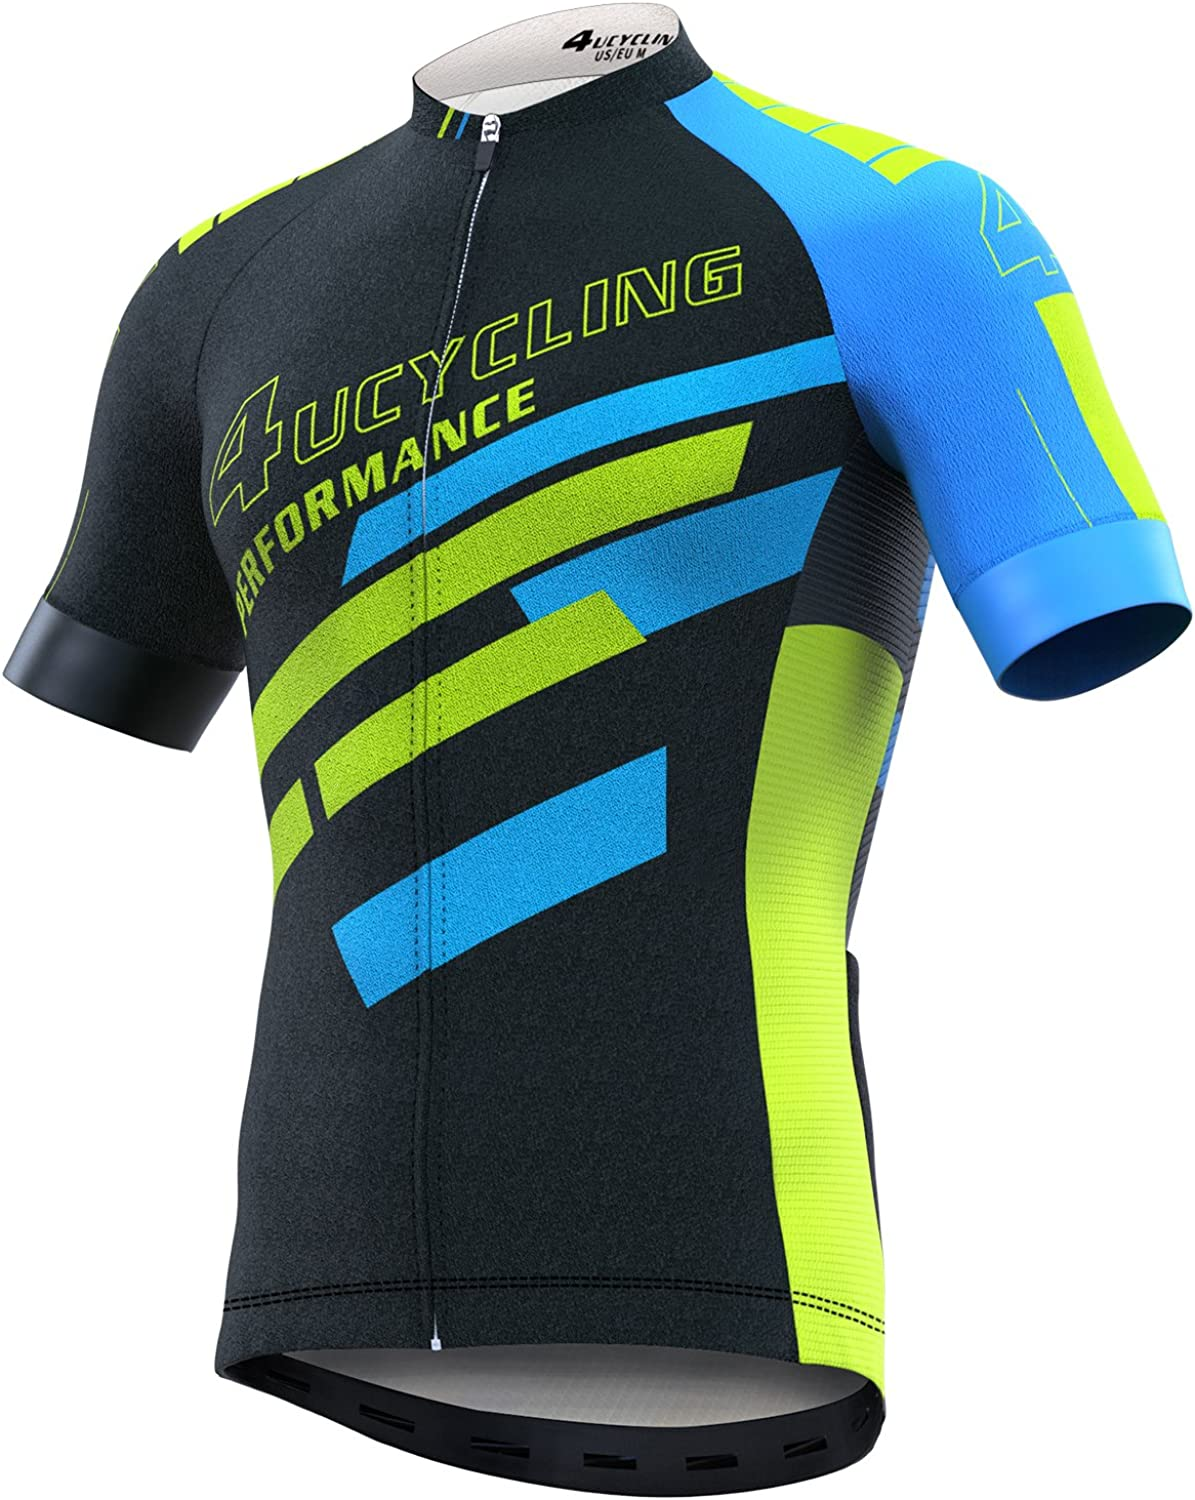 Men Long Sleeve Cycling Jersey Bike Tops Relaxed Fit Breathable Bicycle Shirt 43